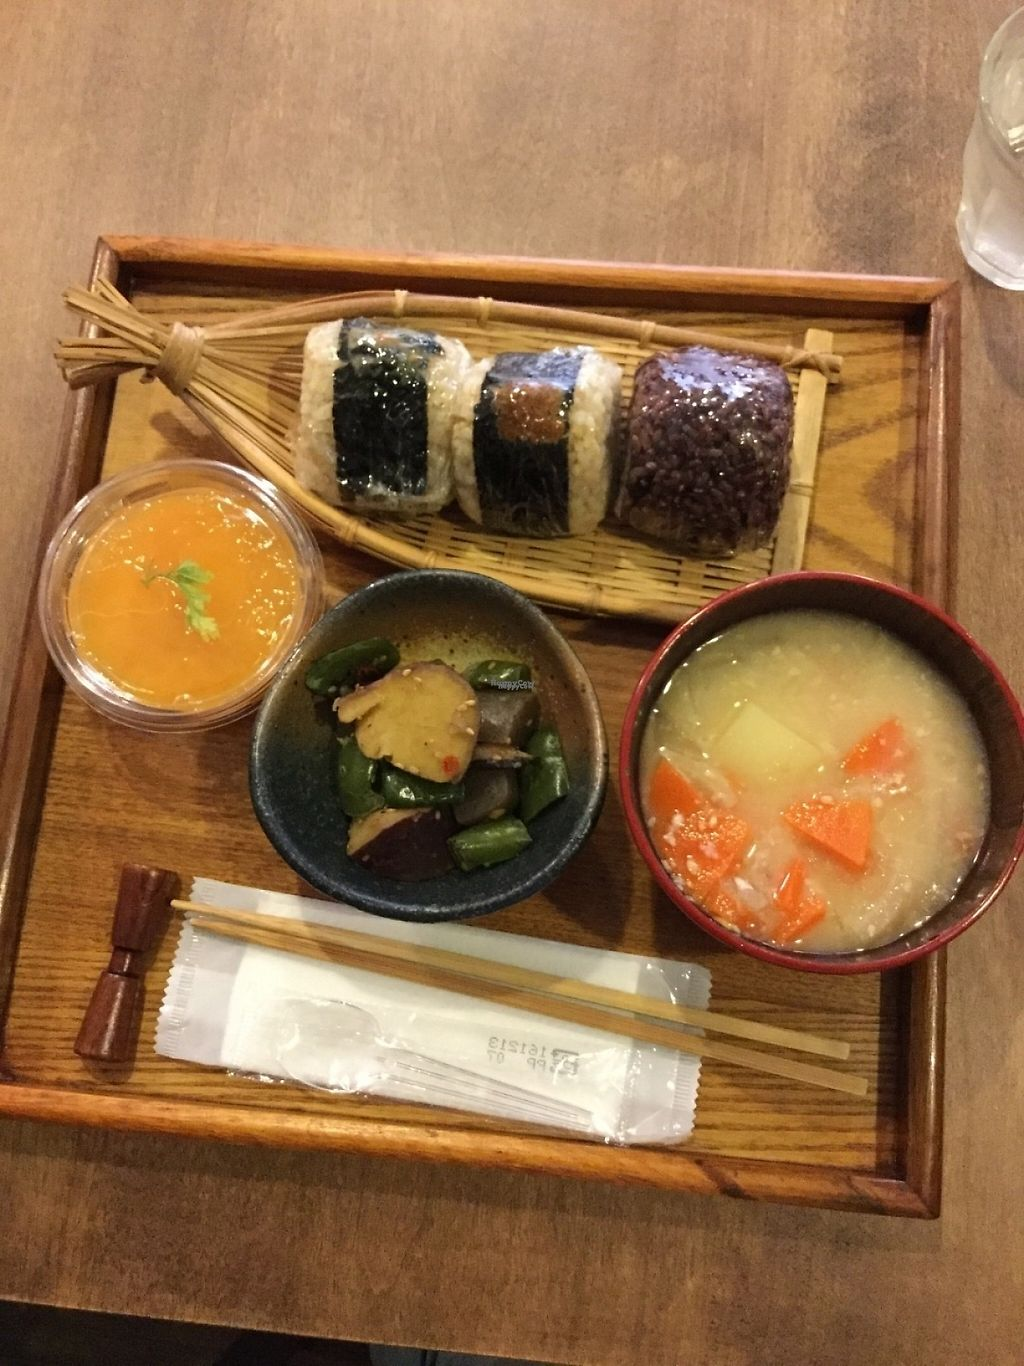 "Photo of Omusubi-Chaya Waseda  by <a href=""/members/profile/Nonchalante"">Nonchalante</a> <br/>Rice balls, miso soup, vegetable side dish, mikan jelly <br/> April 22, 2017  - <a href='/contact/abuse/image/90701/251073'>Report</a>"